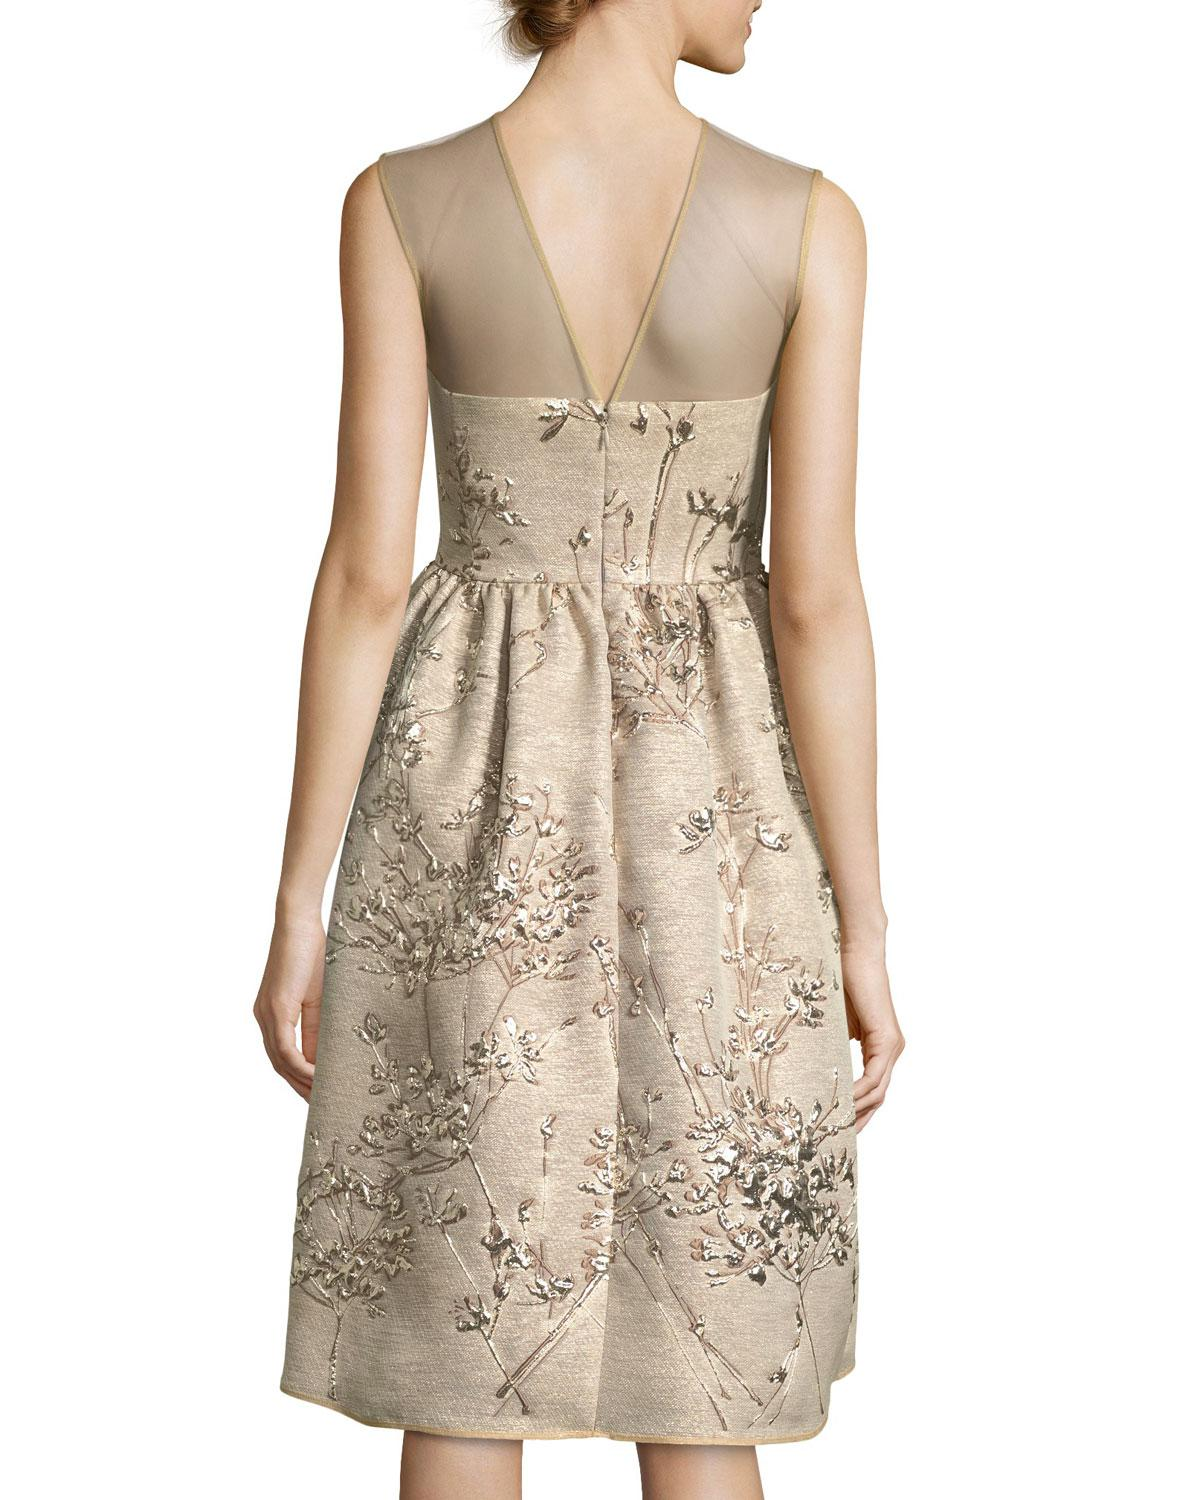 35e0f49ae37 Lyst - Talbot Runhof Ponnel Sleeveless Twig Silk Jacquard Cocktail Dress  With Floral Embroidery in Natural - Save 50%